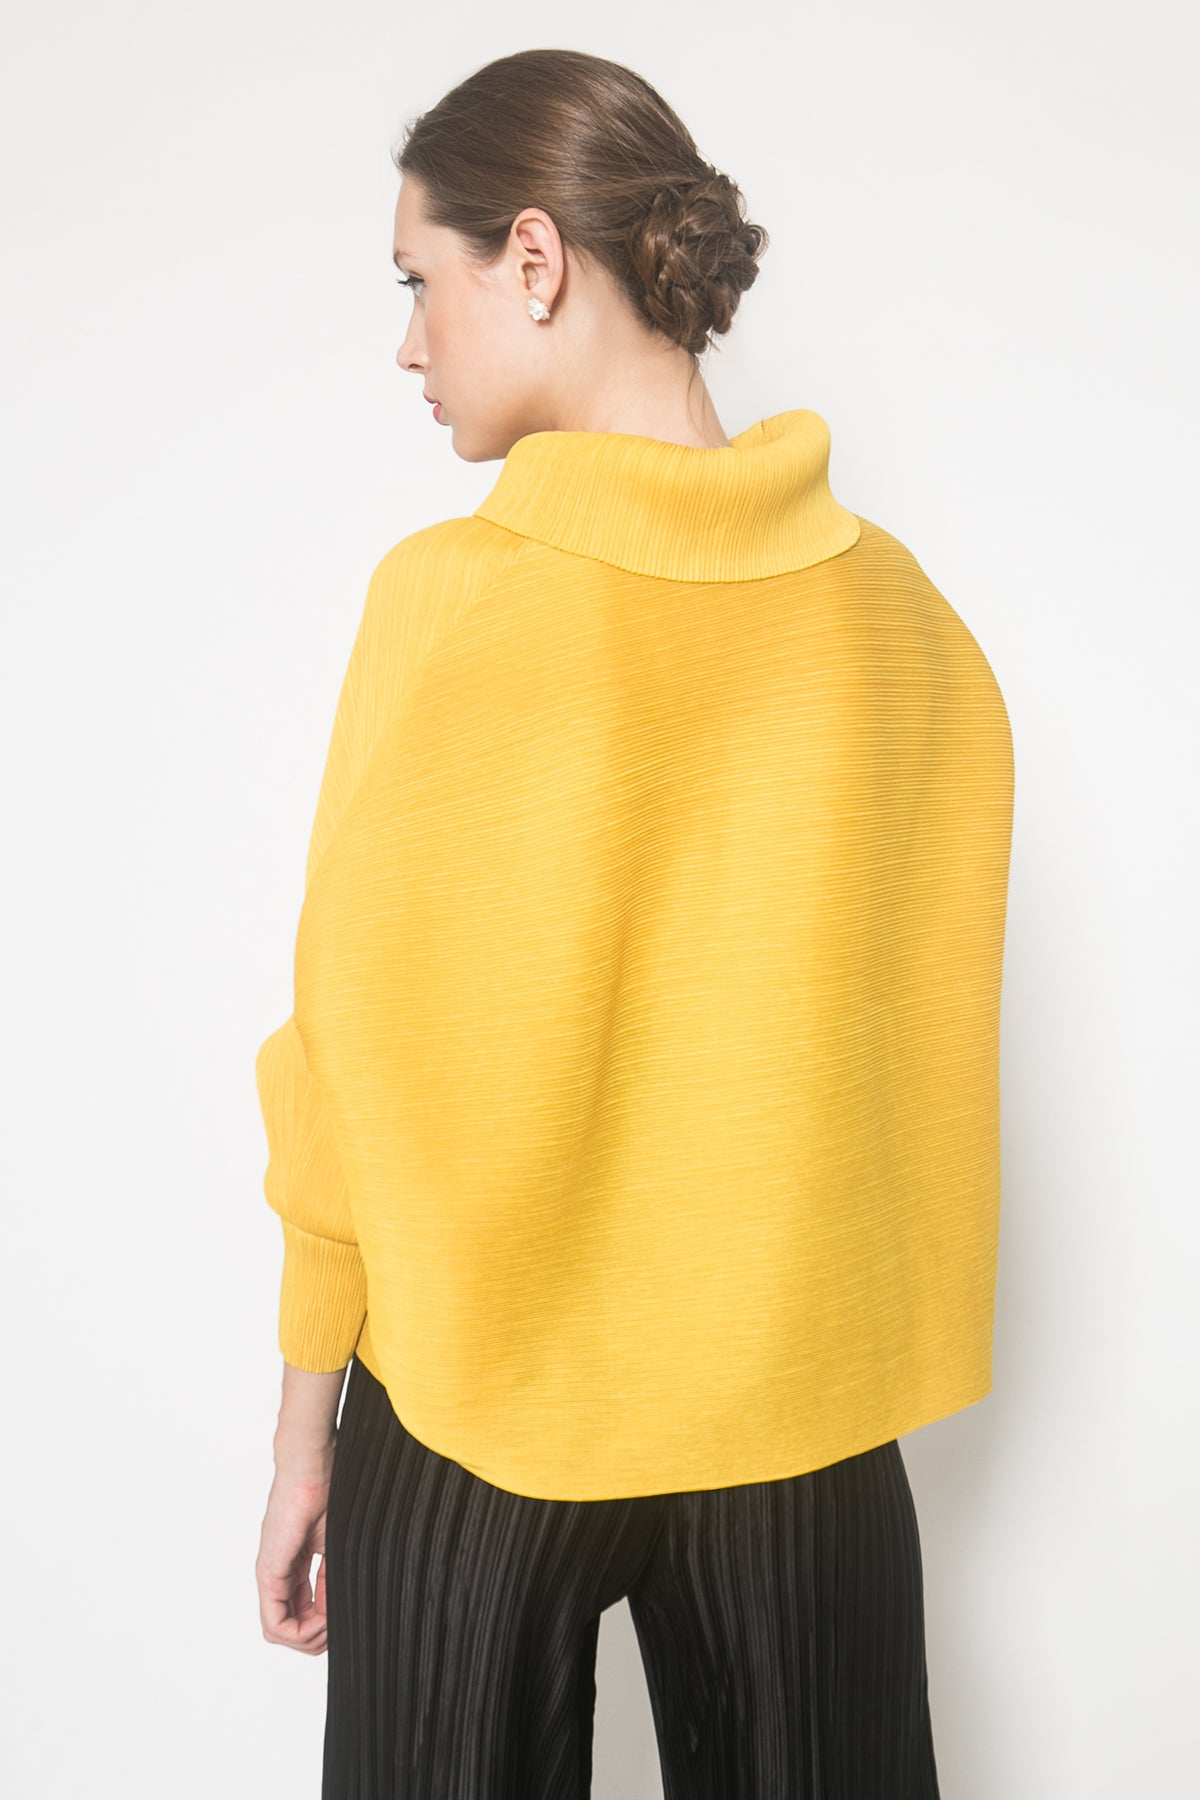 Bramley Top in Yellow Mustard